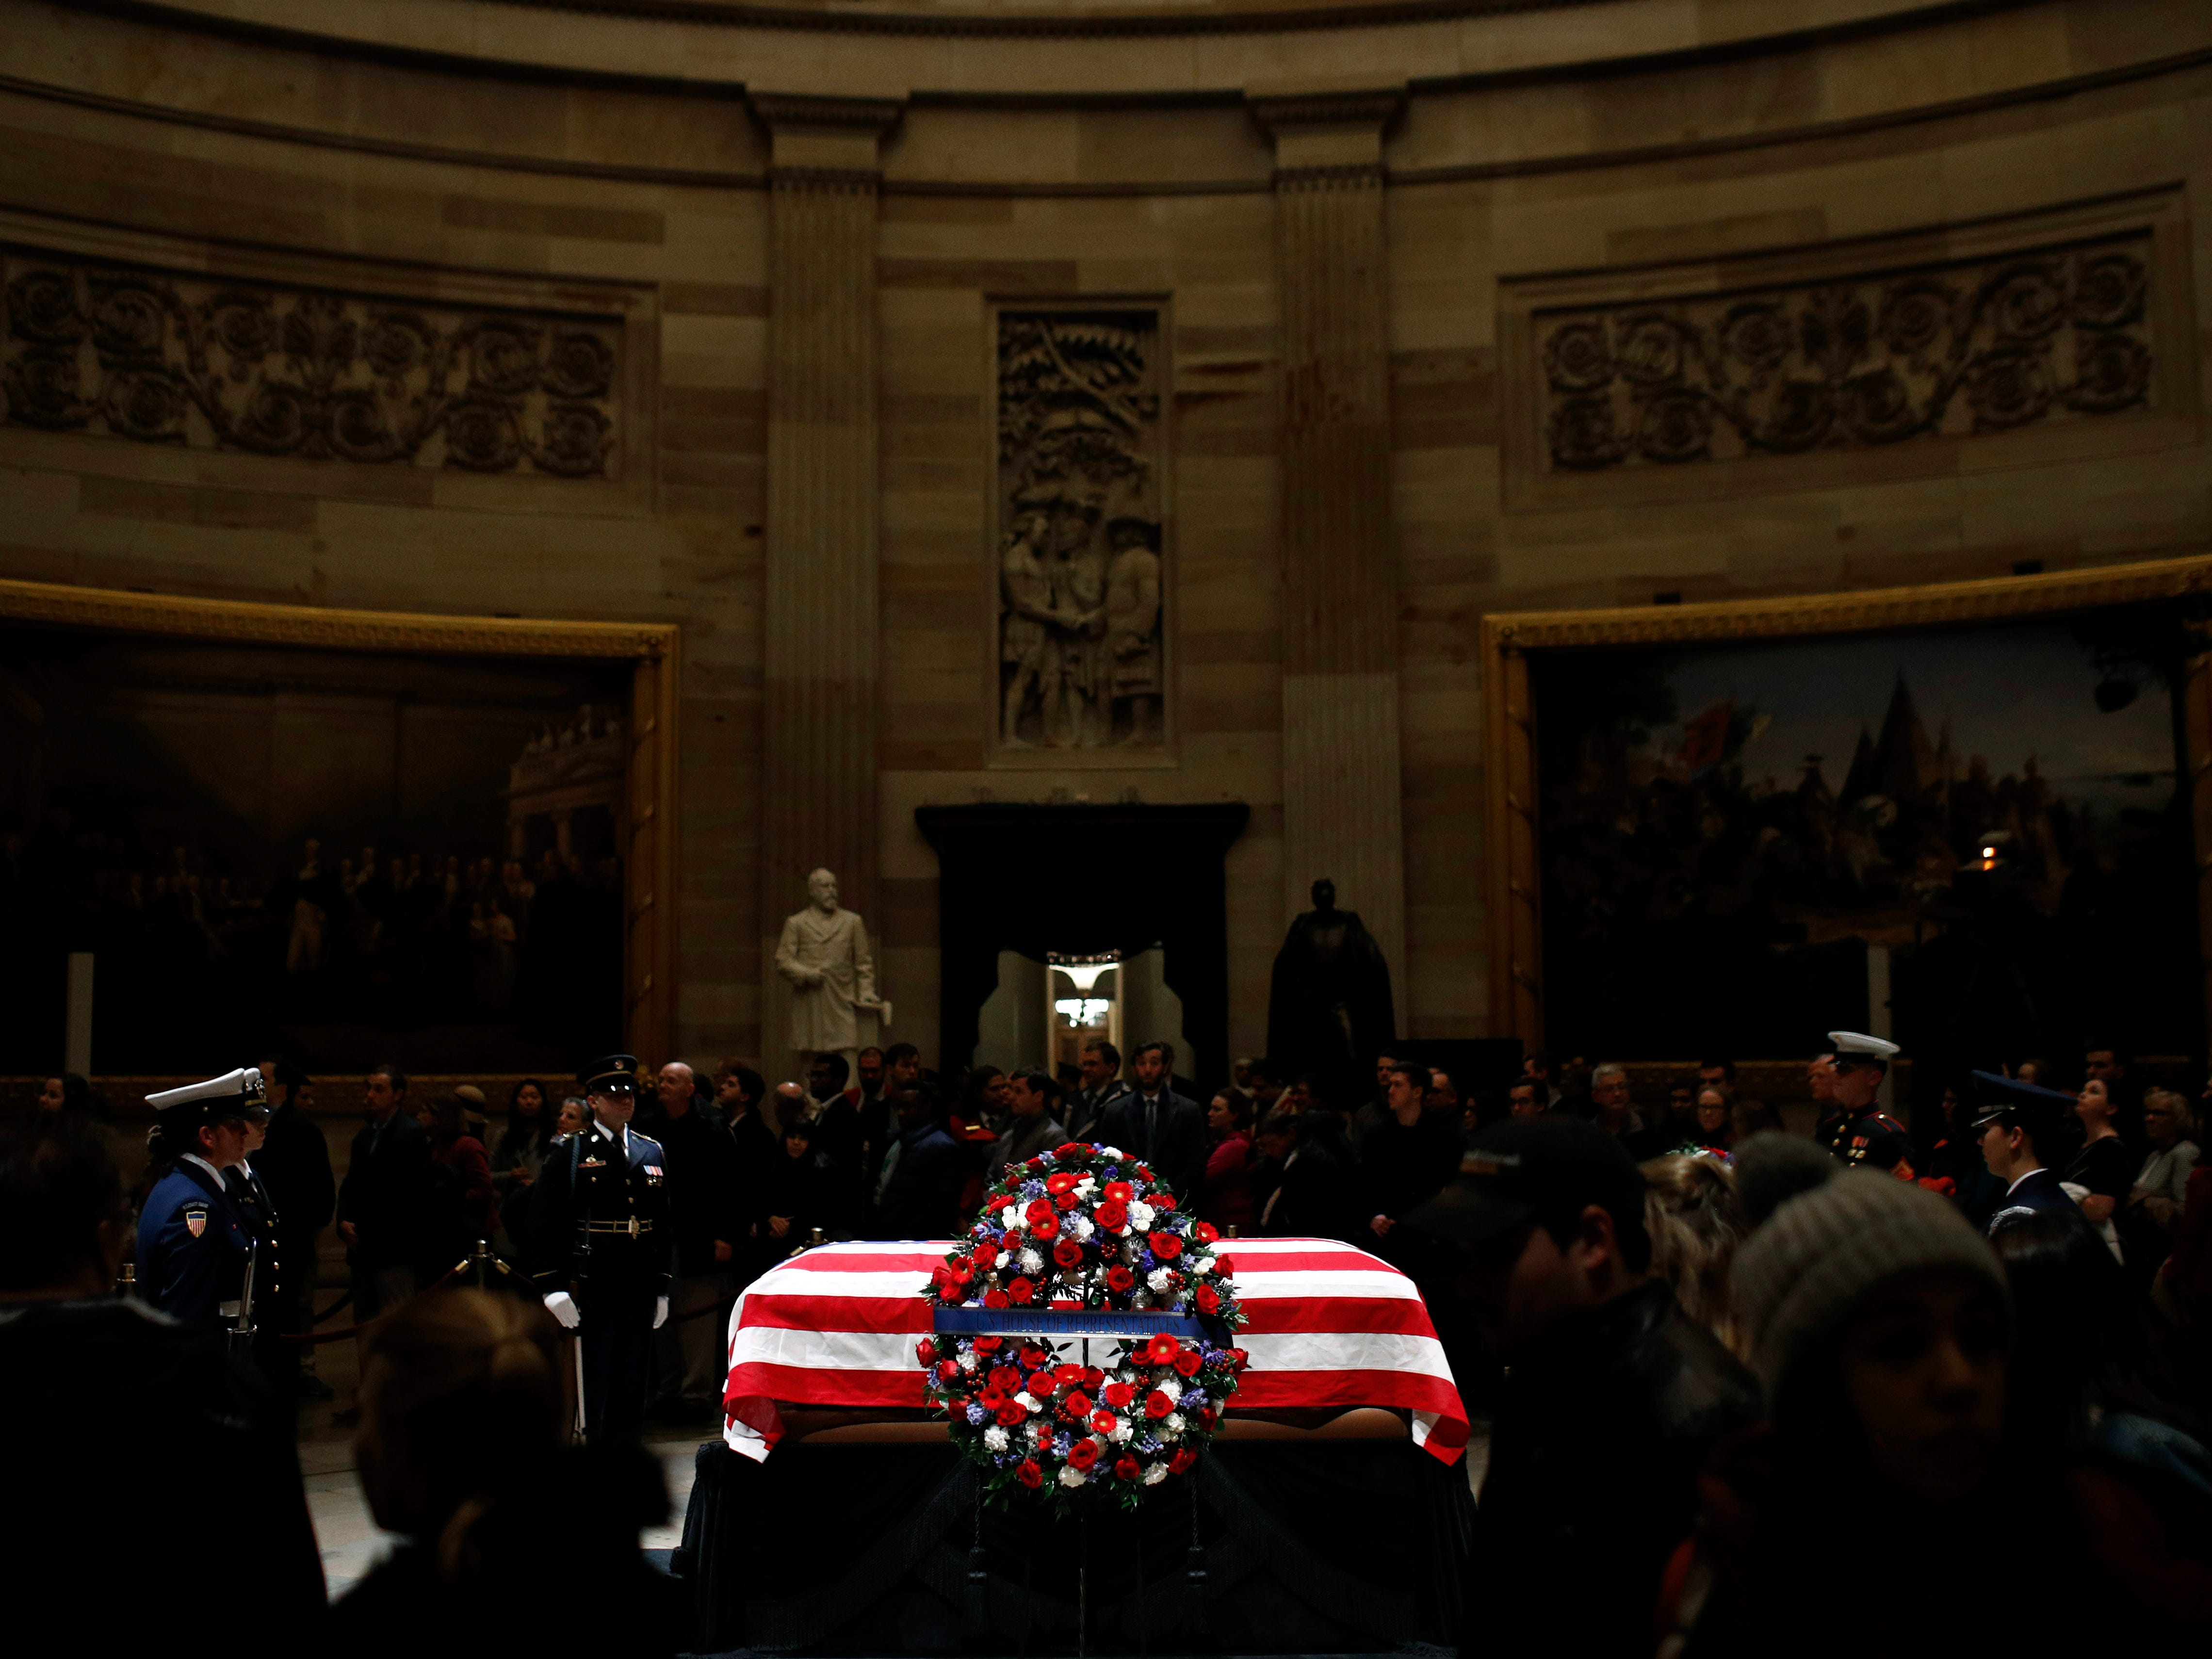 Visitors file past the flag-draped casket of former President George H.W. Bush as he lies in state in the Capitol Rotunda in Washington, Monday, Dec. 3, 2018.